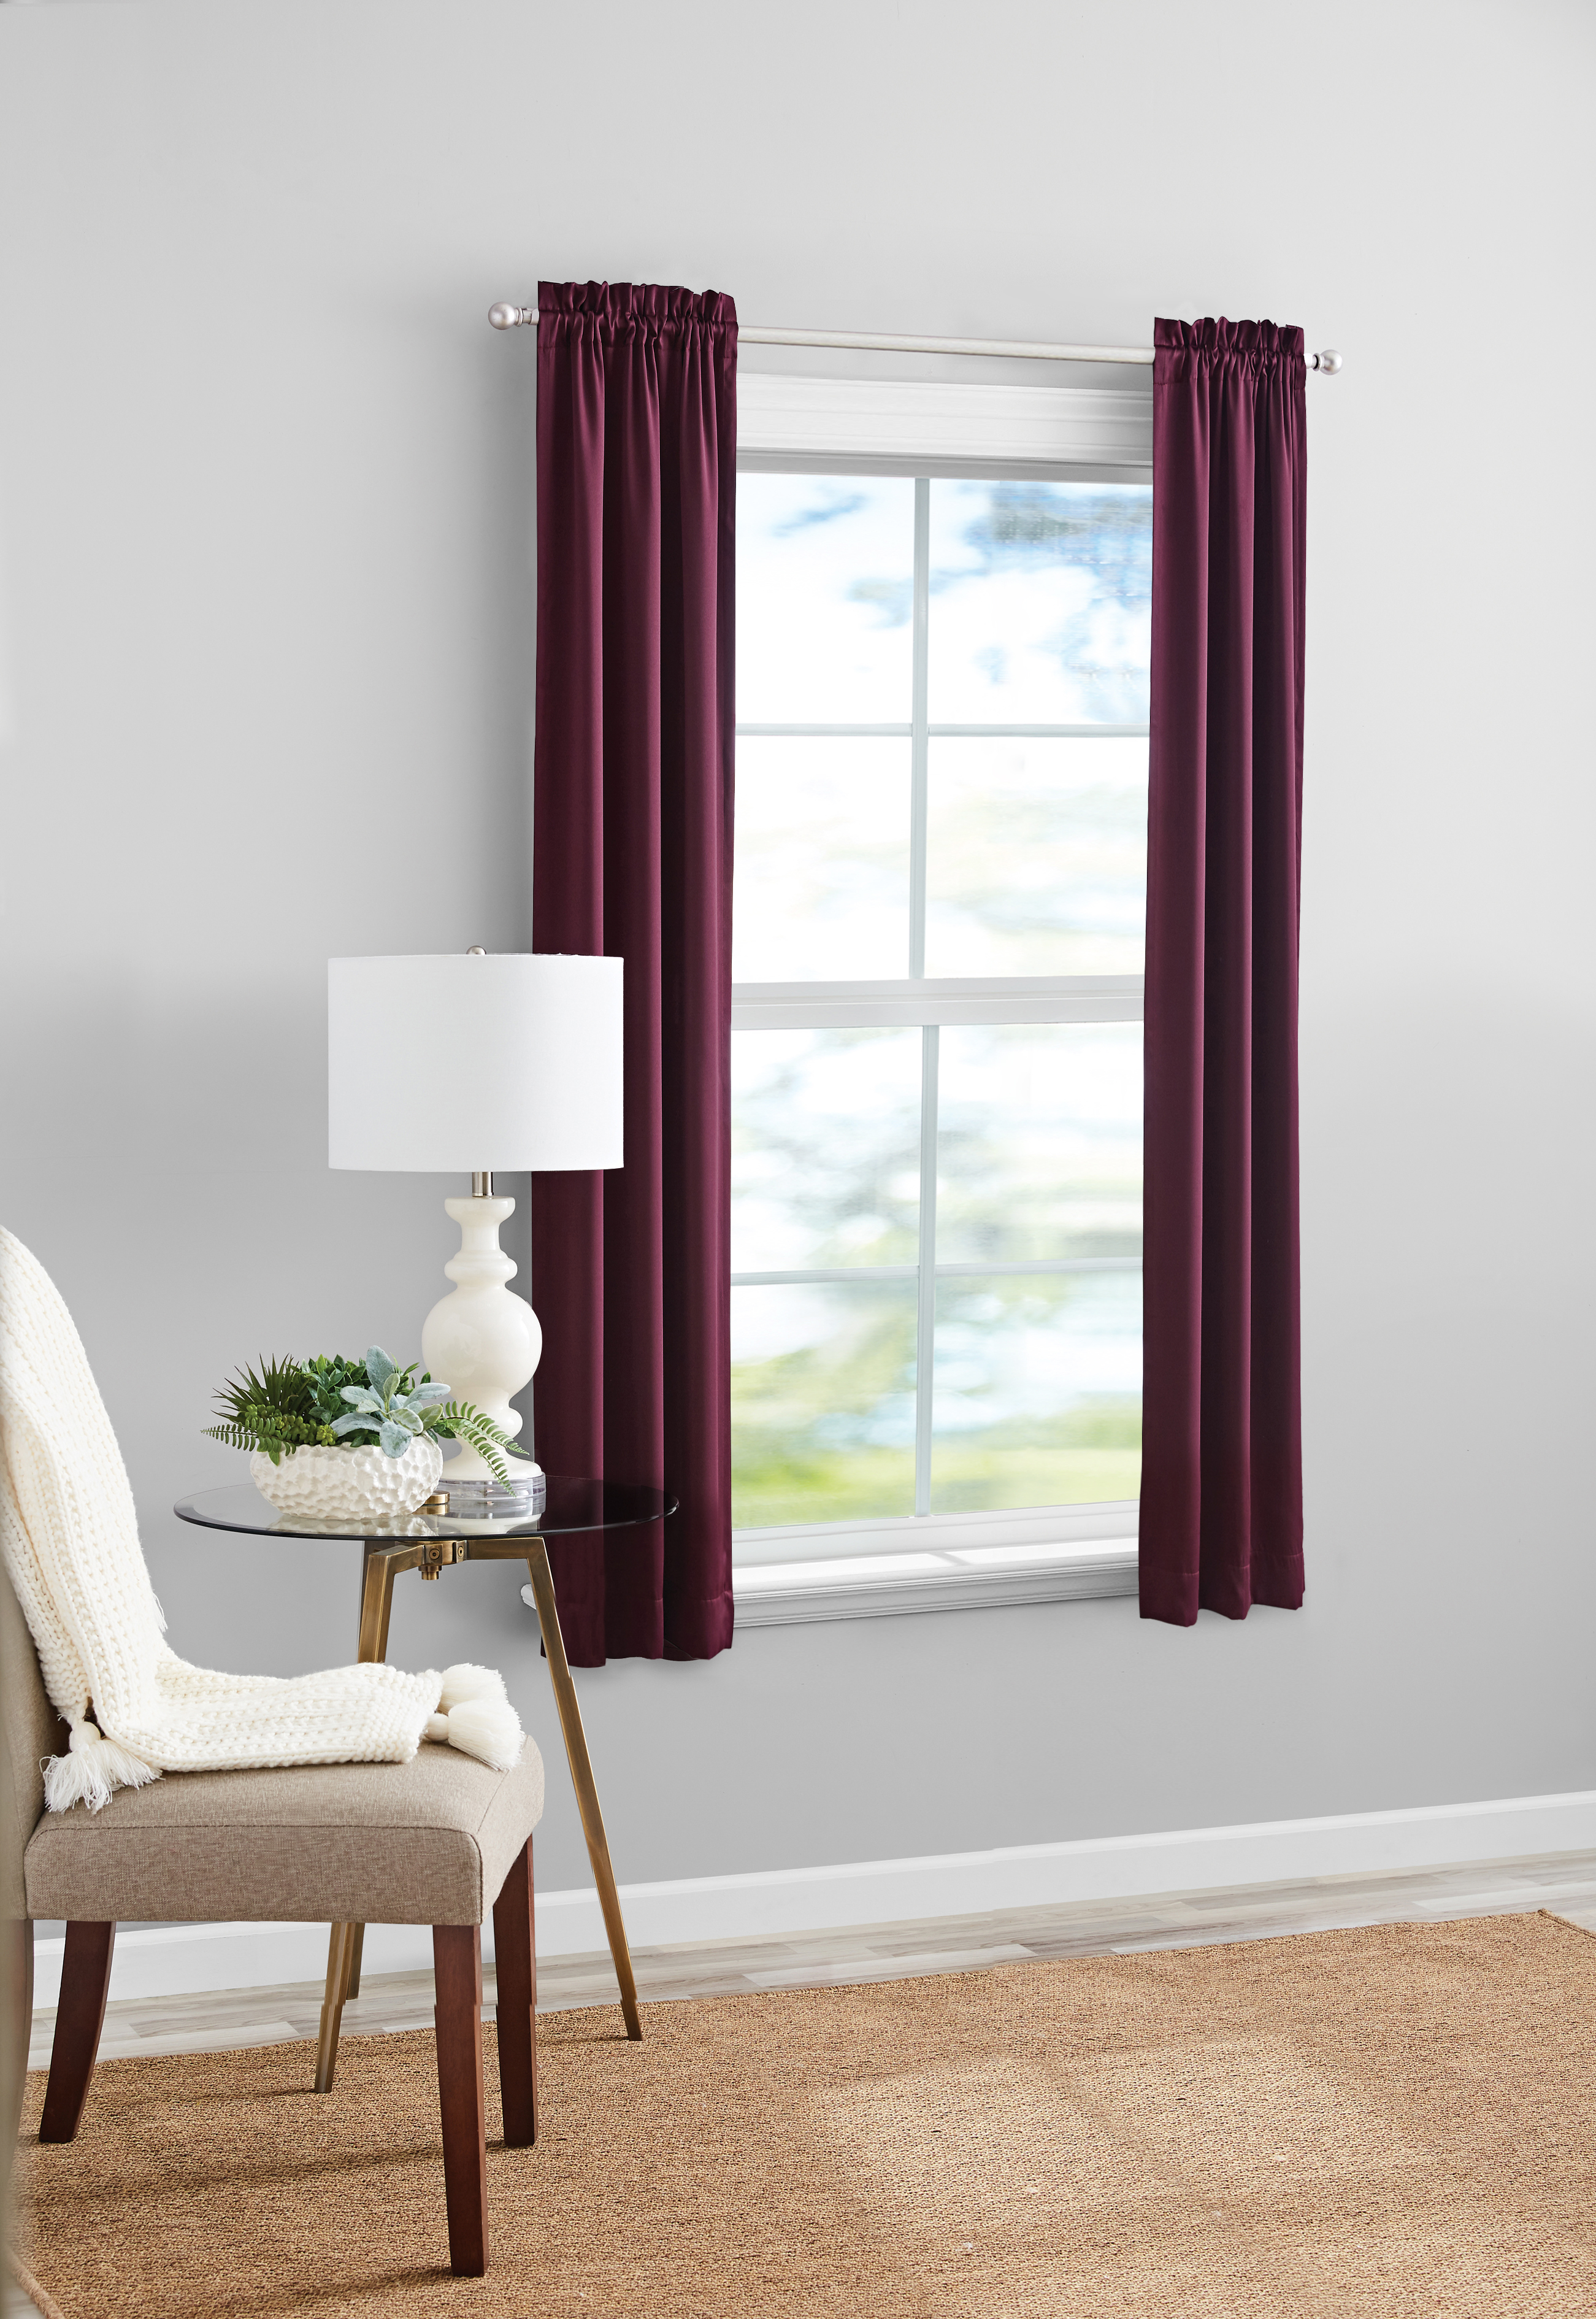 Mainstays Solid Color Room Darkening Rod Pocket Curtain Panel Set Of 2 Burgundy 30x63 Walmart Com Walmart Com